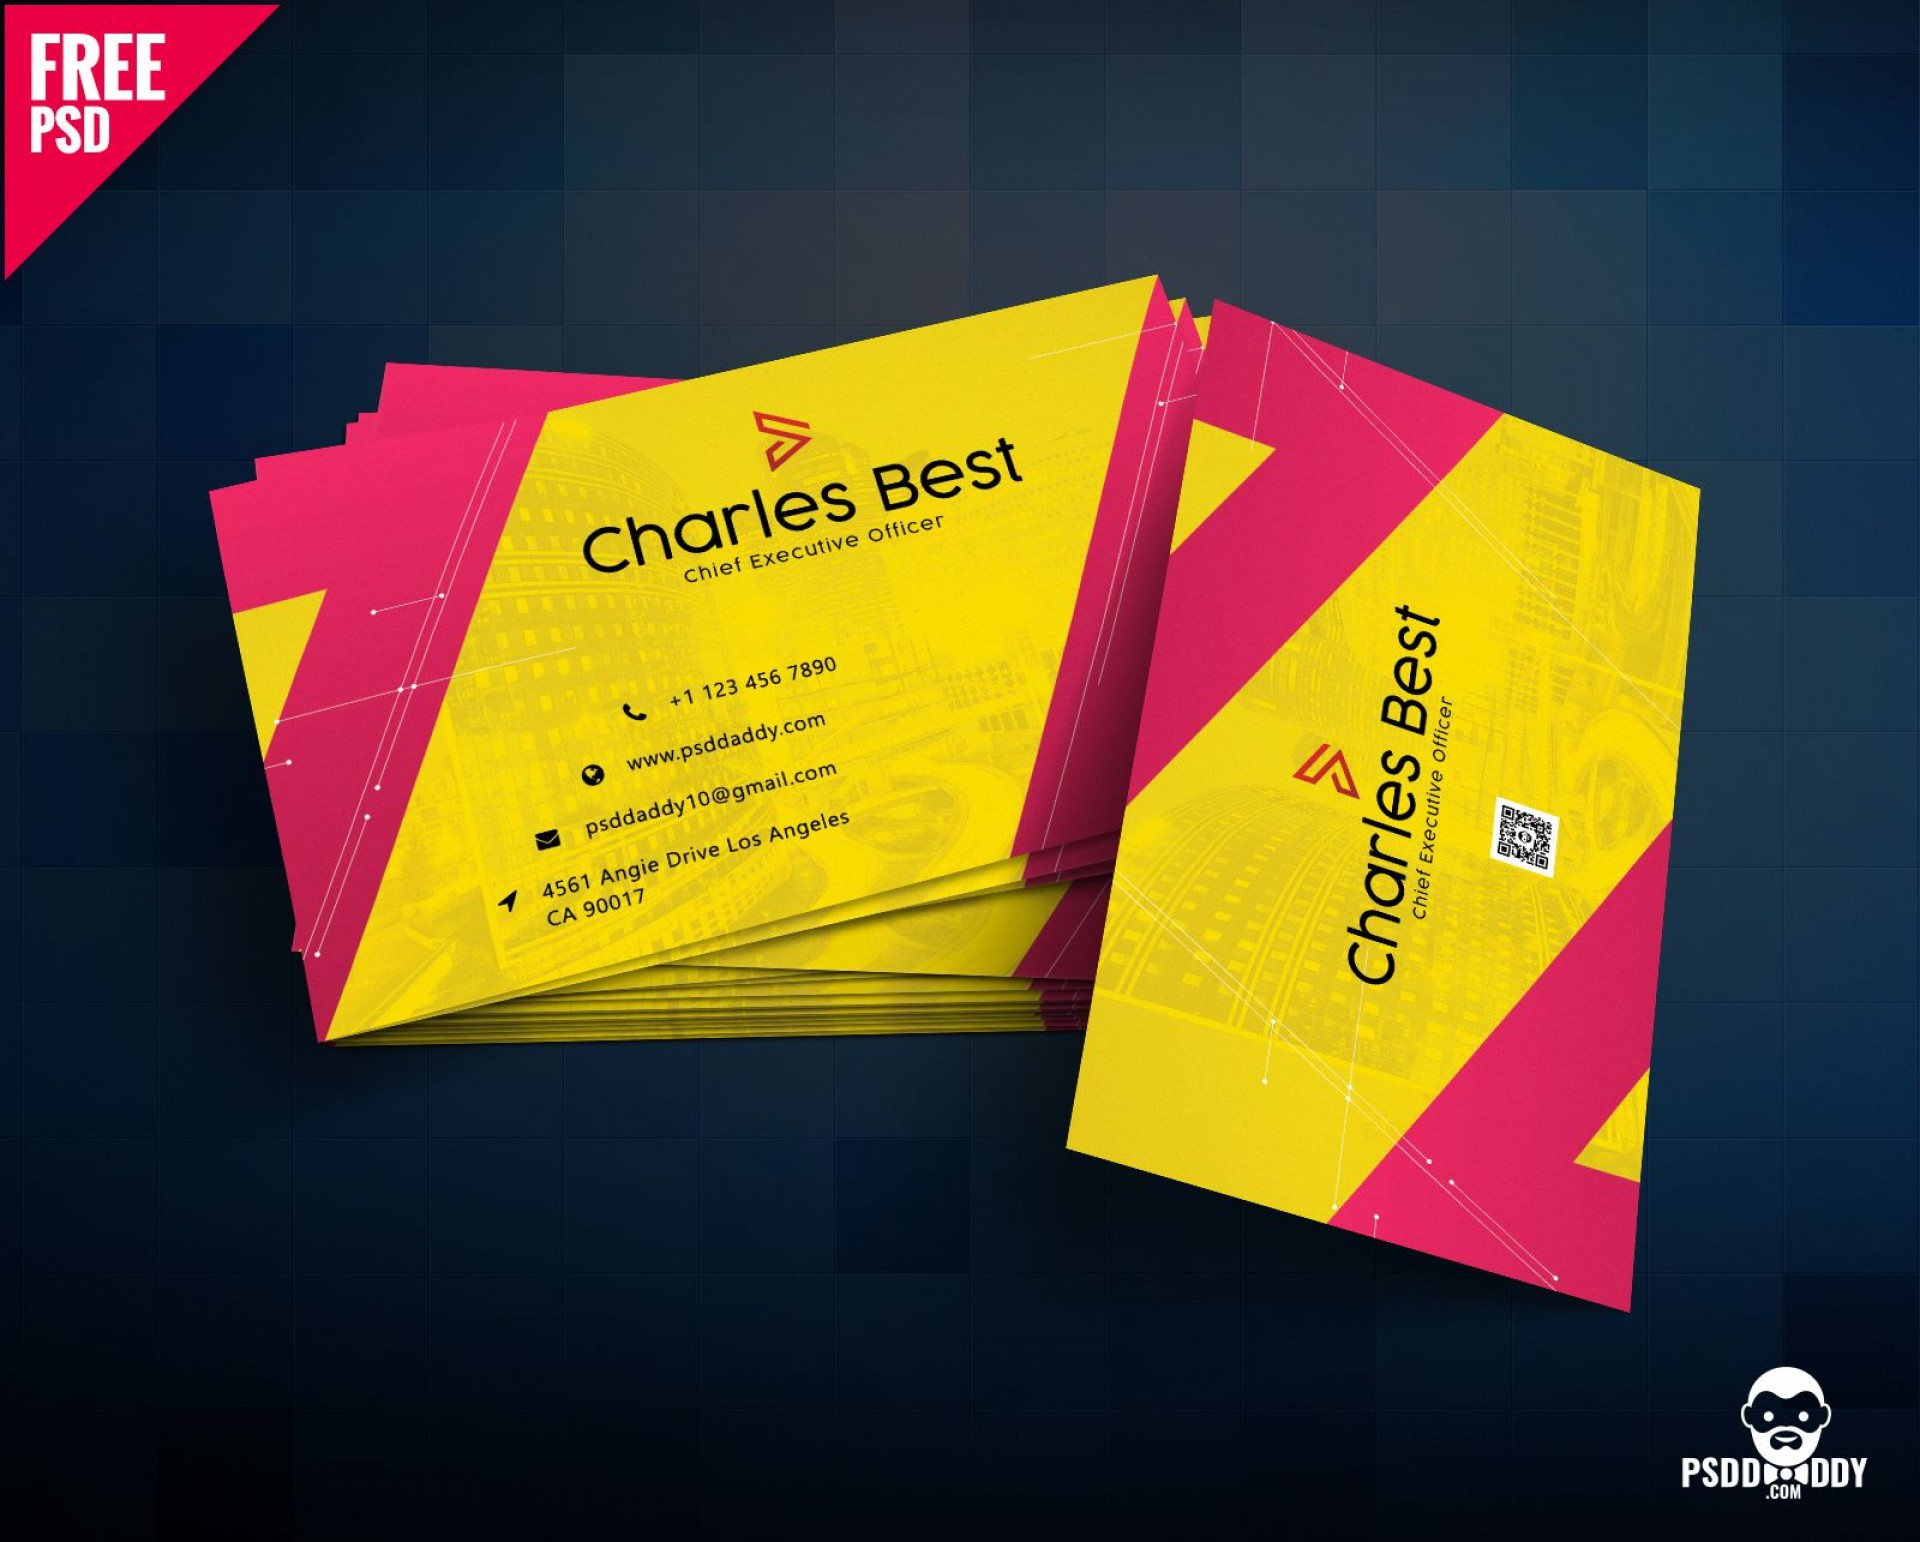 007 Formidable Blank Busines Card Template Psd Free Download Sample  Photoshop1920